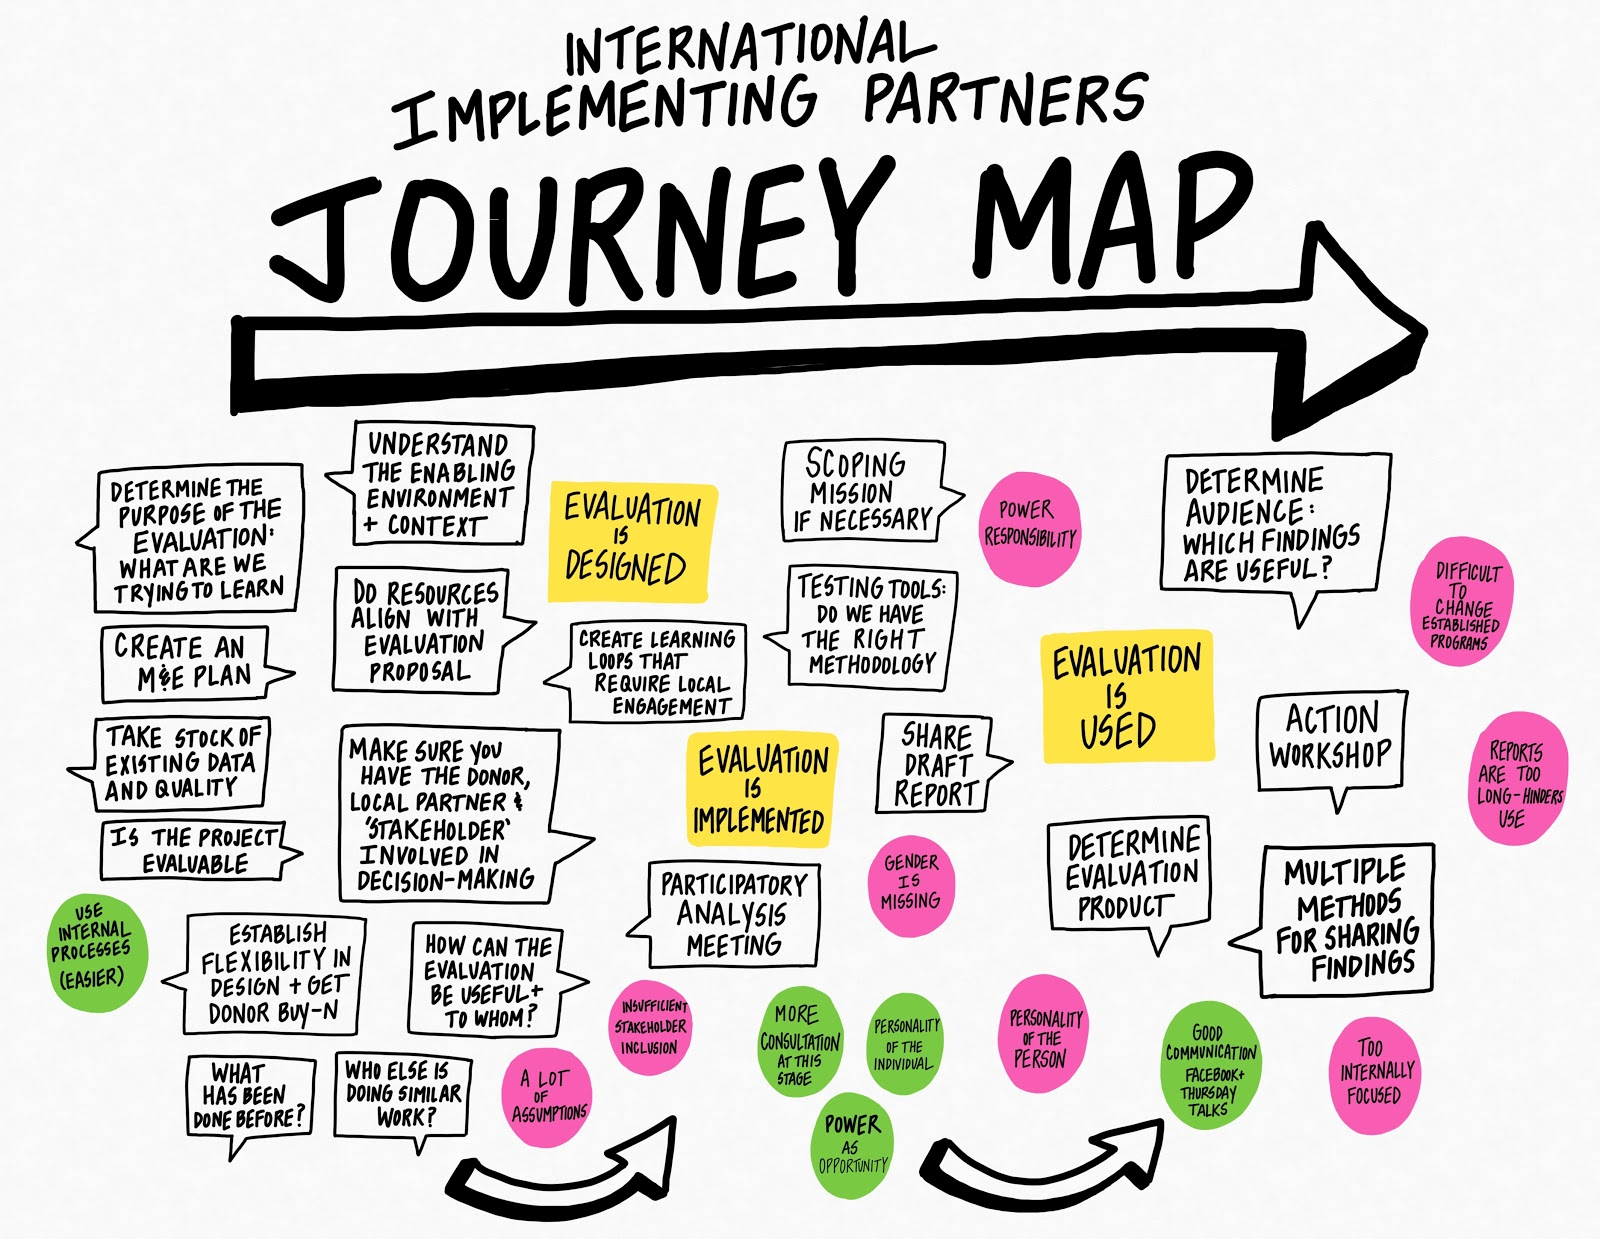 KH, Implementing Partners, Journey Map.jpg